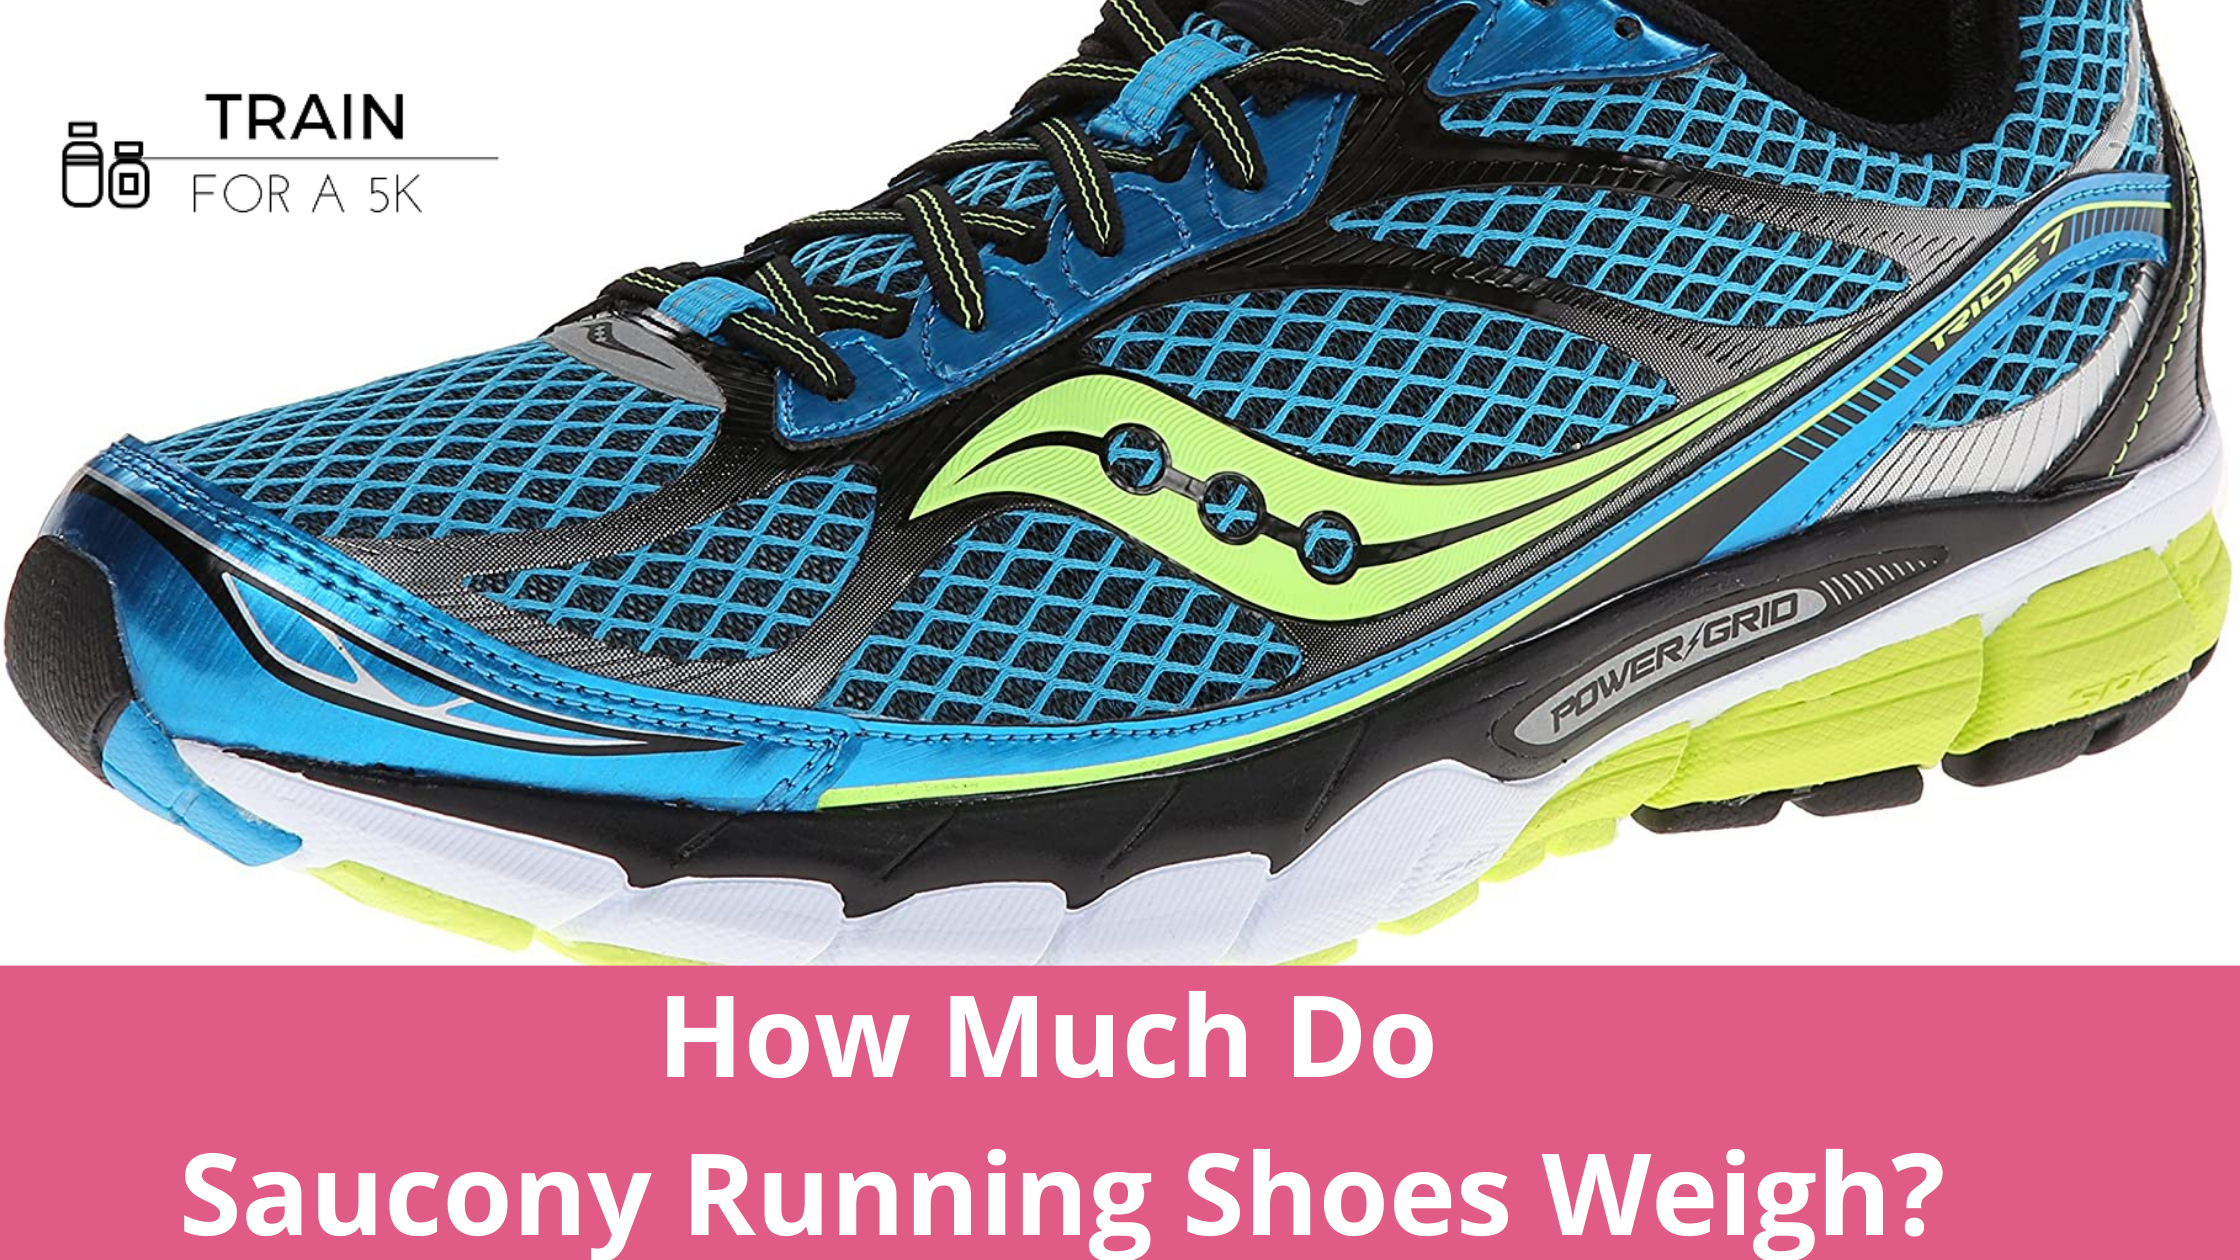 The average weight of a Saucony running shoe is 9.4 ounces in men's and 8.3 ounces in women's. The heaviest Saucony running shoe is the Peregrine and the lightest is the Endorphin Pro.